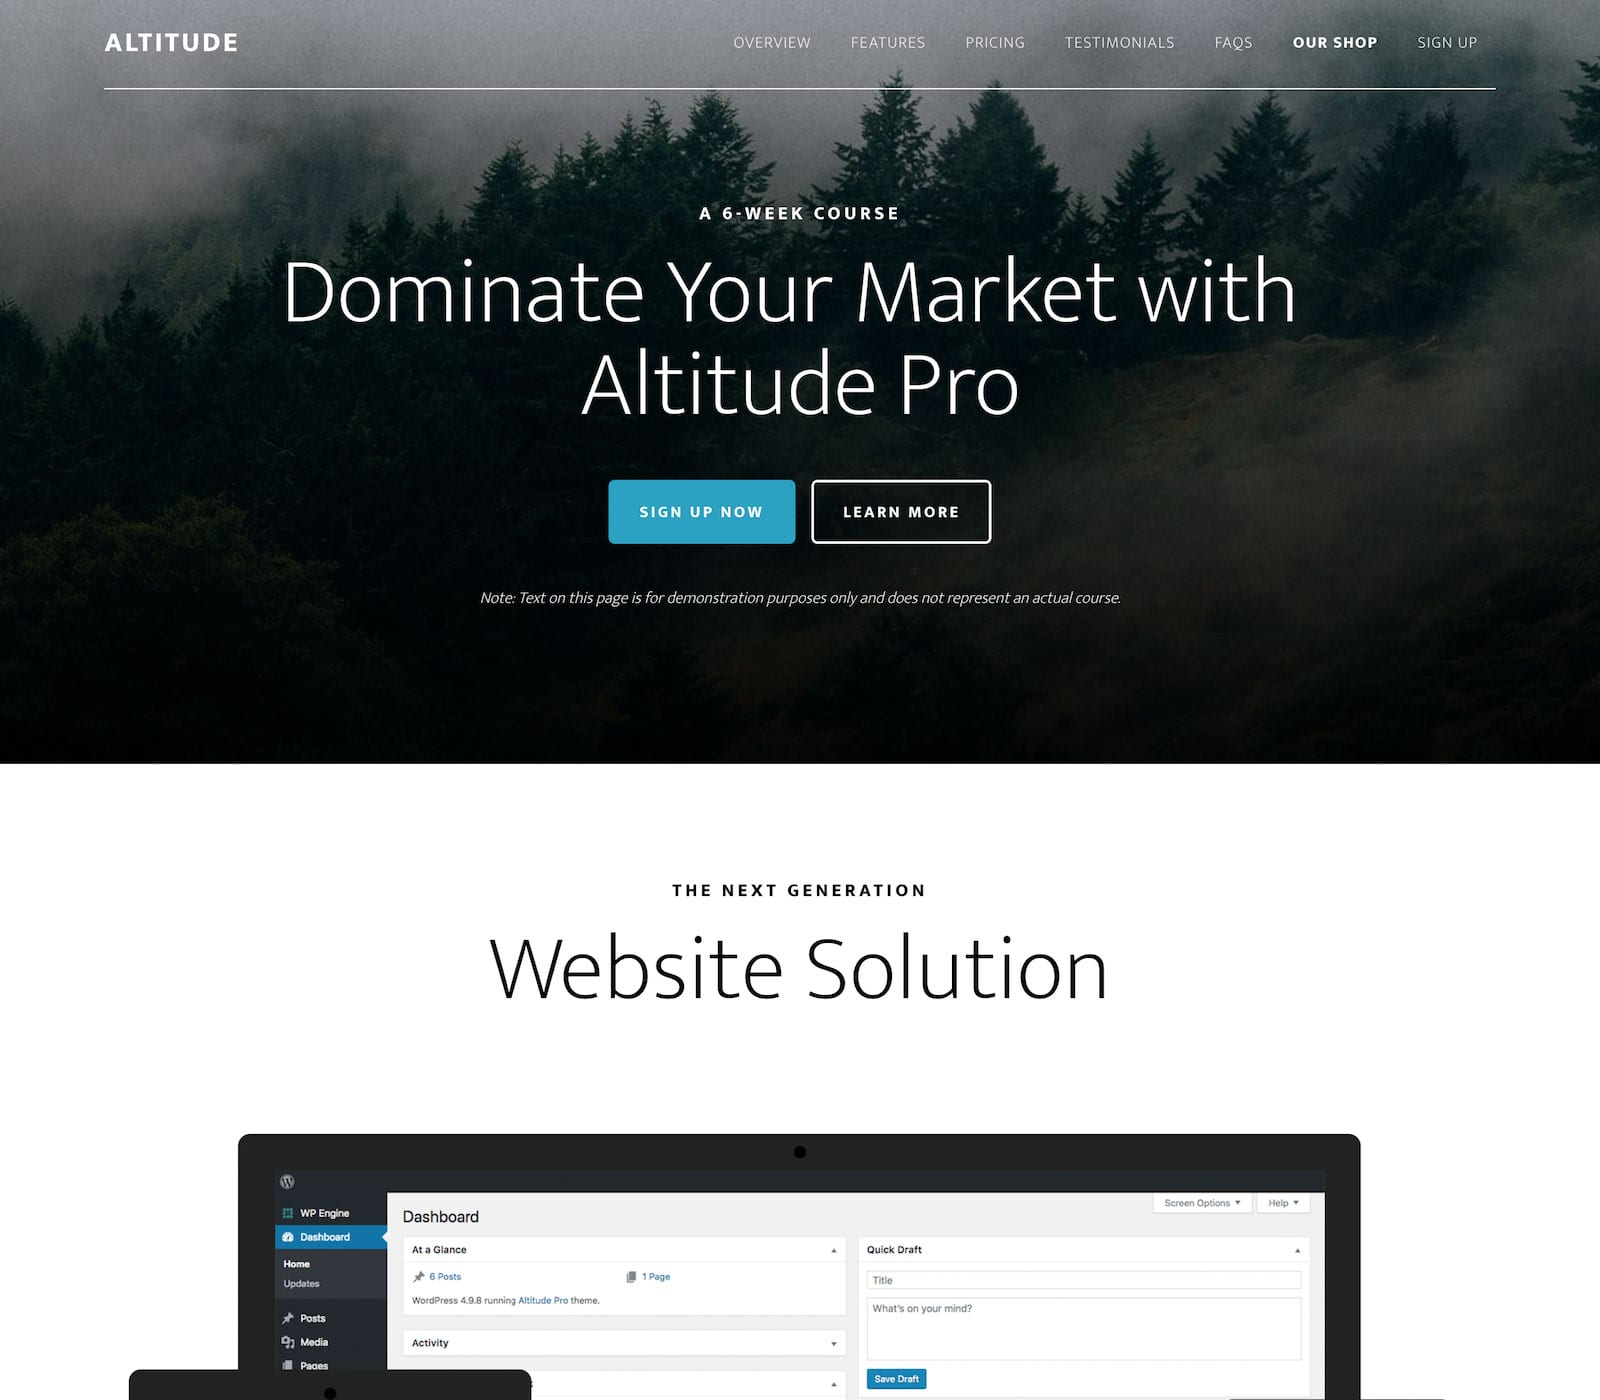 The parallax effects will grab your eye in the Altitude Pro Theme from StudioPress, but it's the features and flexibility of the design that will move your mind. This is a theme with a plan and purpose to take you and your brand higher.